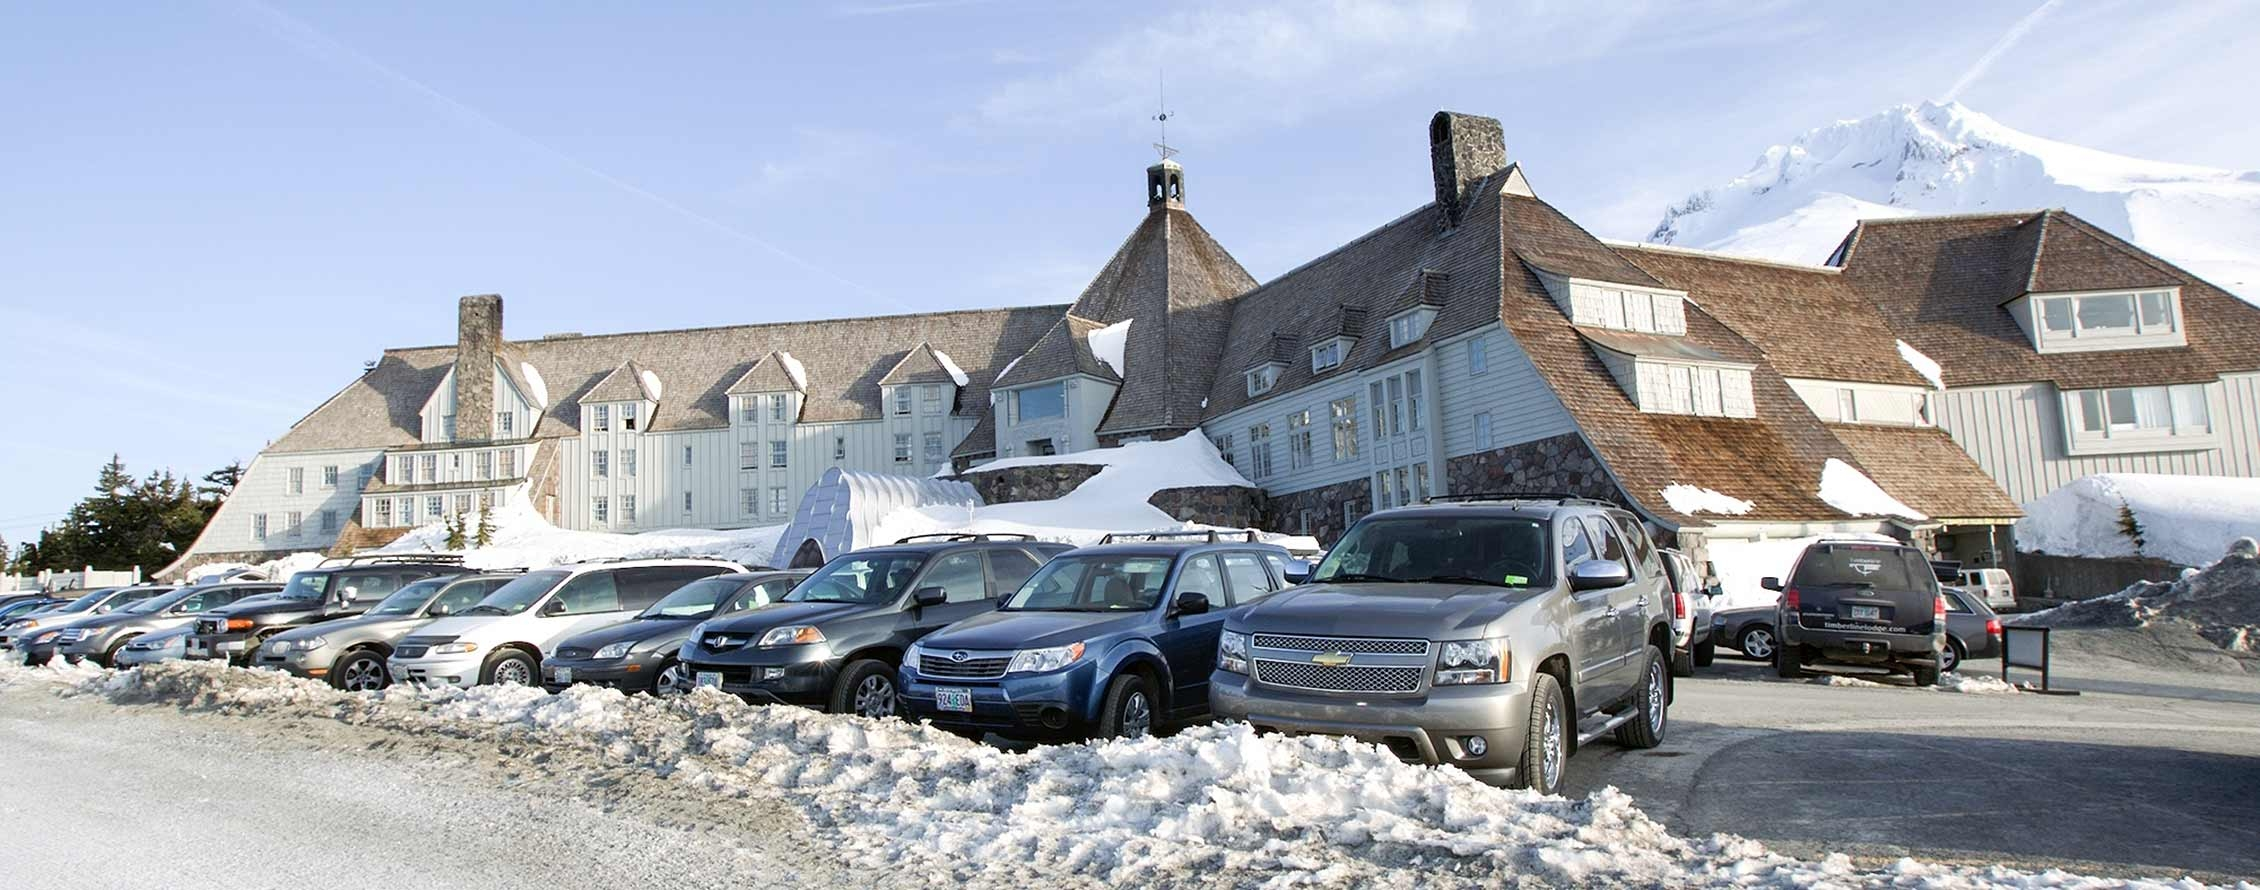 TIMBERLINE LODGE PARKING